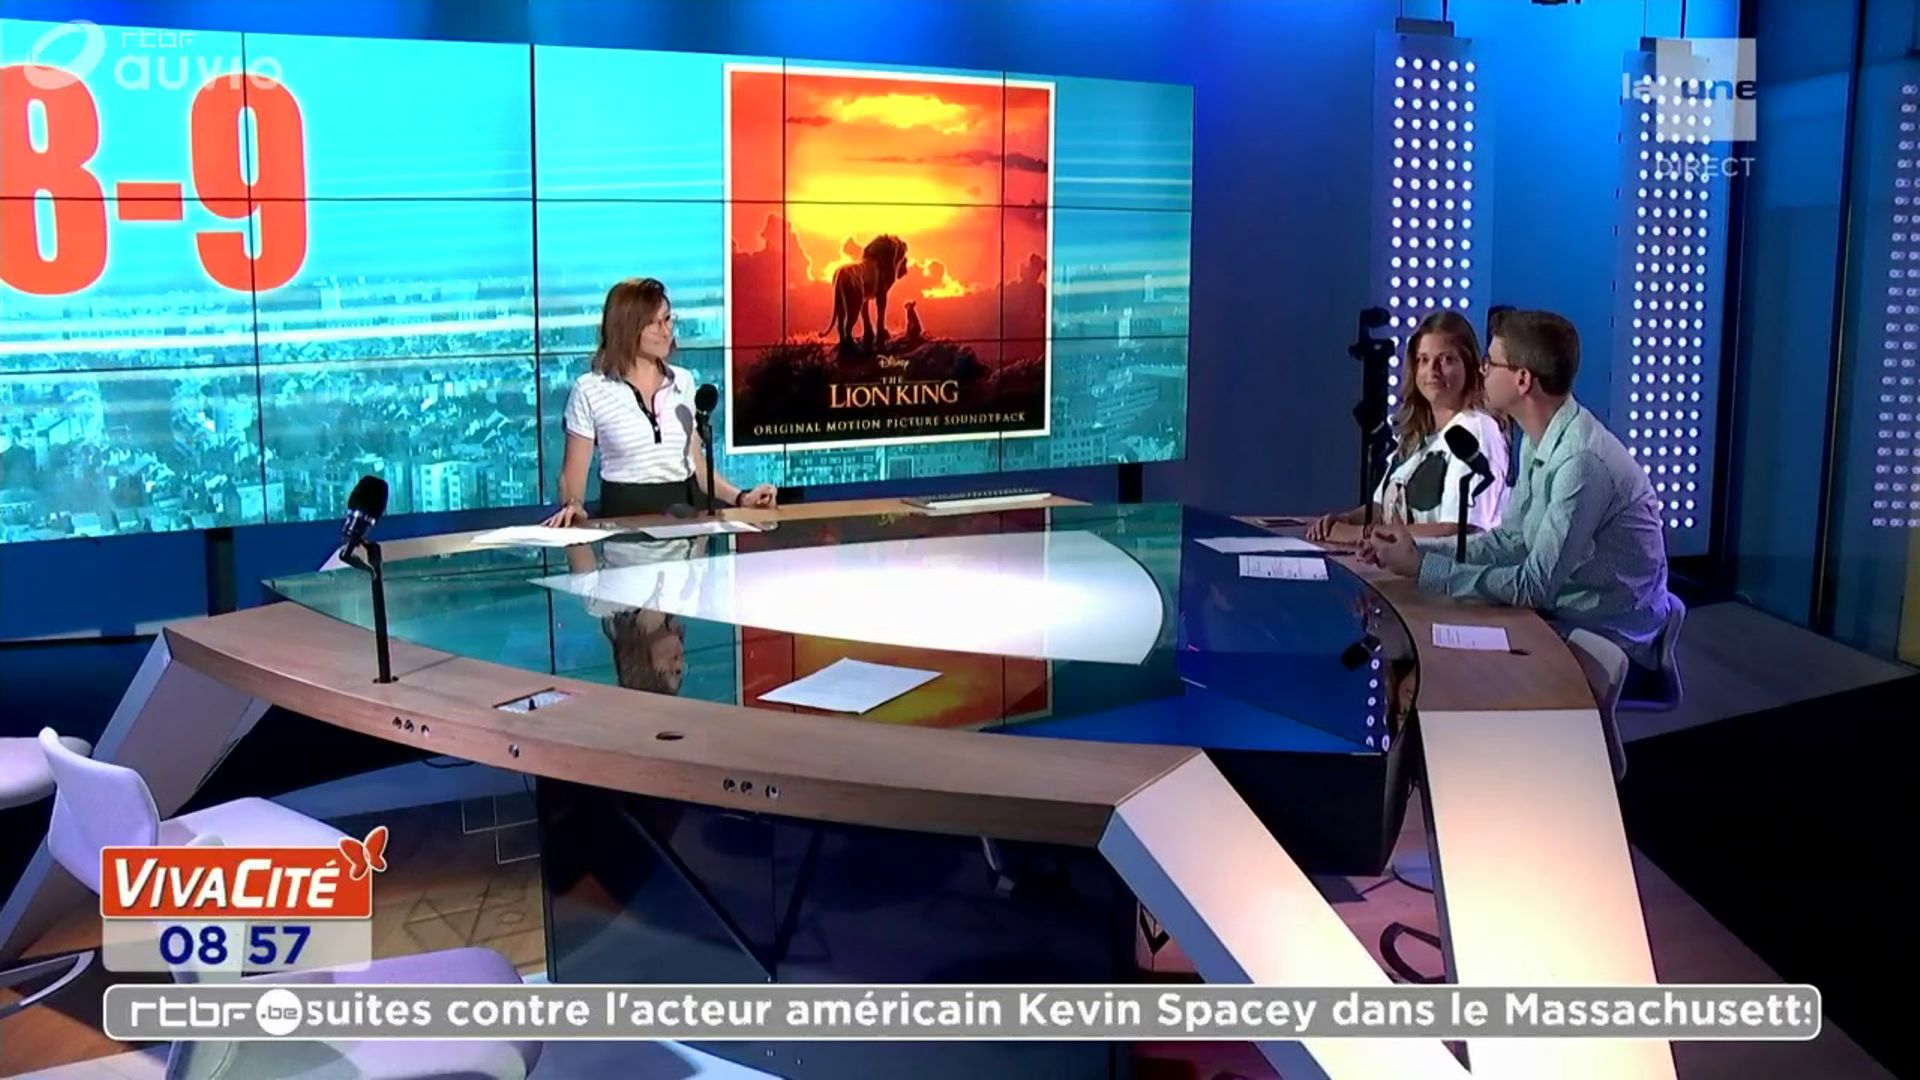 Led Qui Se Colle https://www.rtbf.be/auvio/detail_dick-dale?id=2522569 http